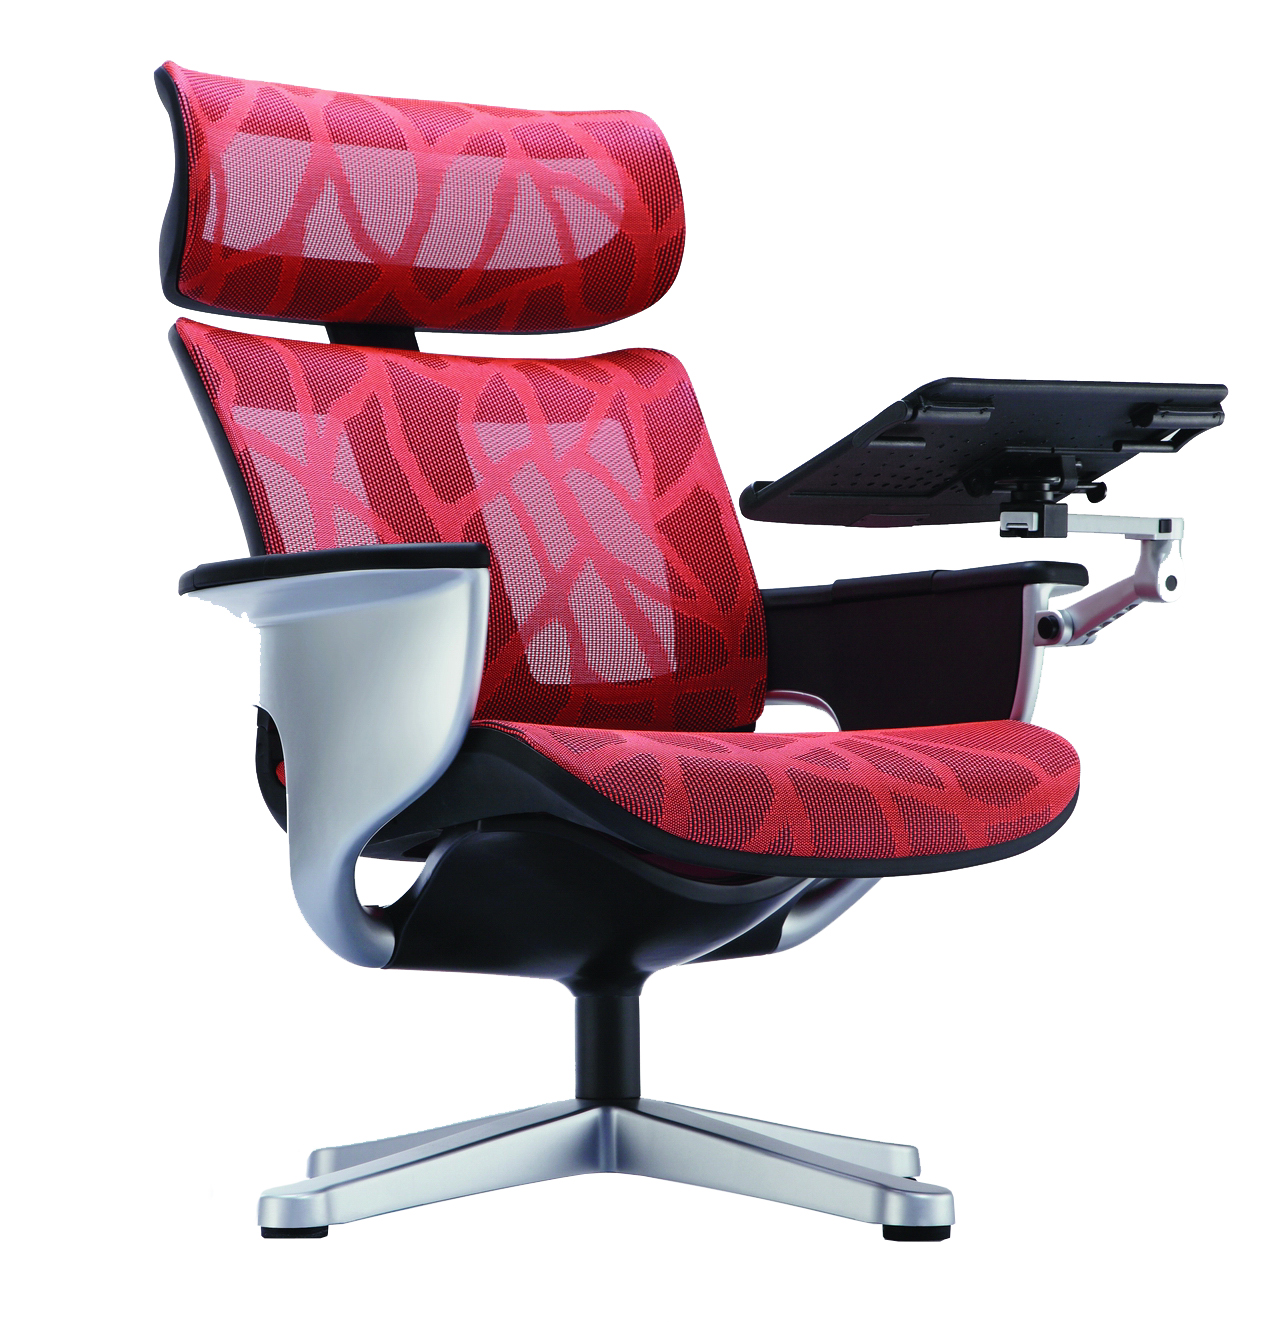 Buy Laptop Adelaide Ergohuman Mesh Chairs For The Office From Buydirectonline